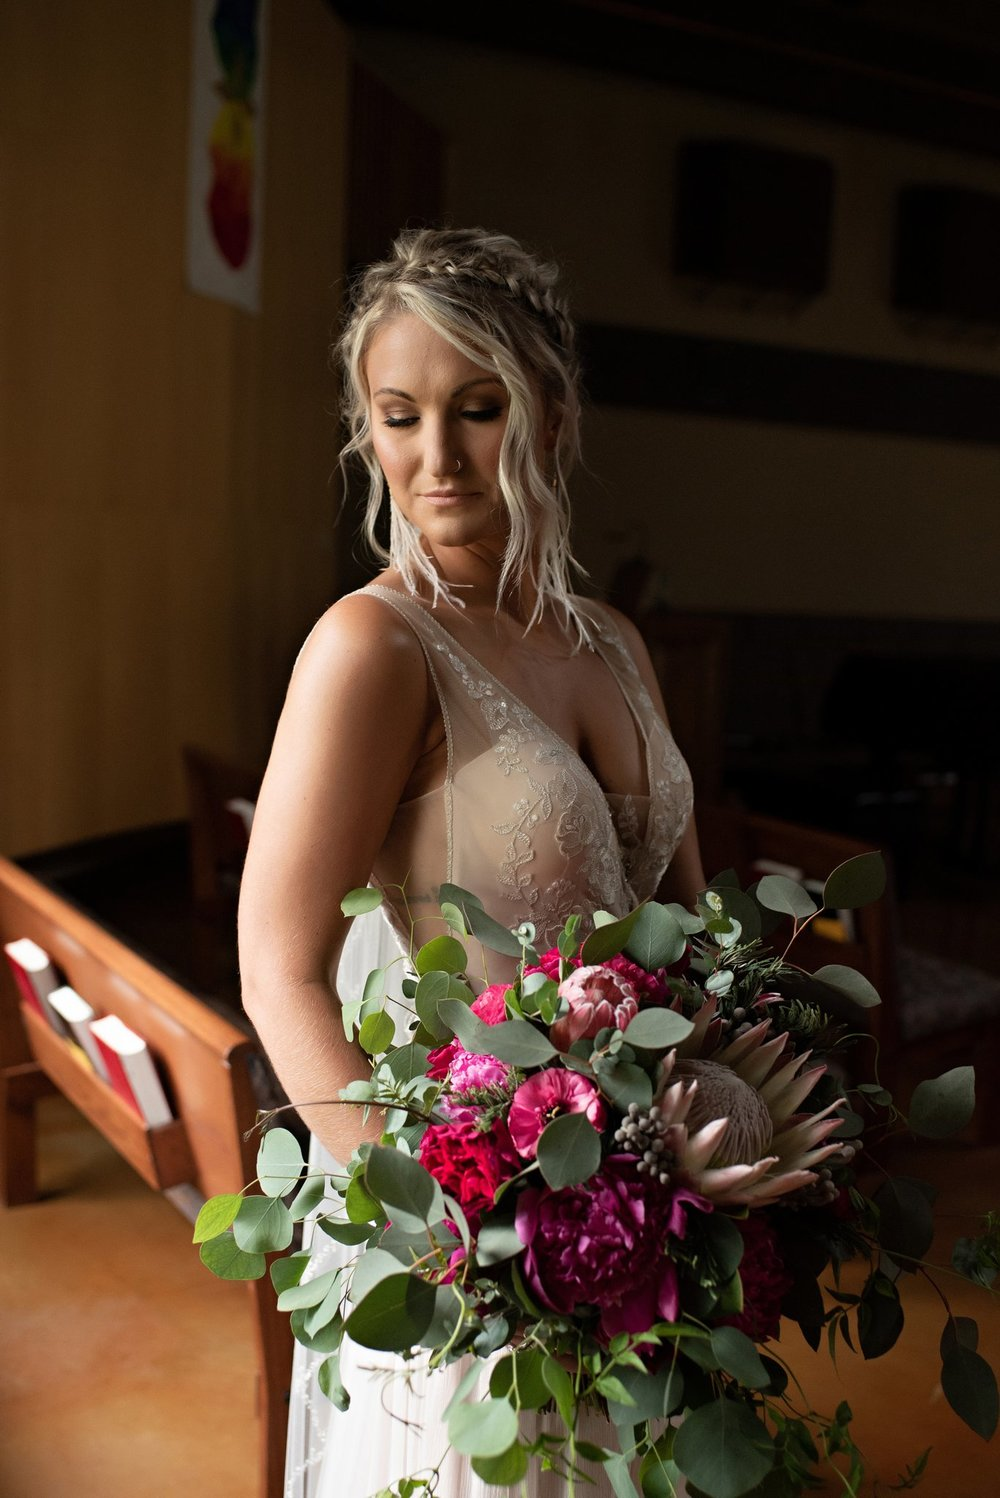 boho chic bride portraits